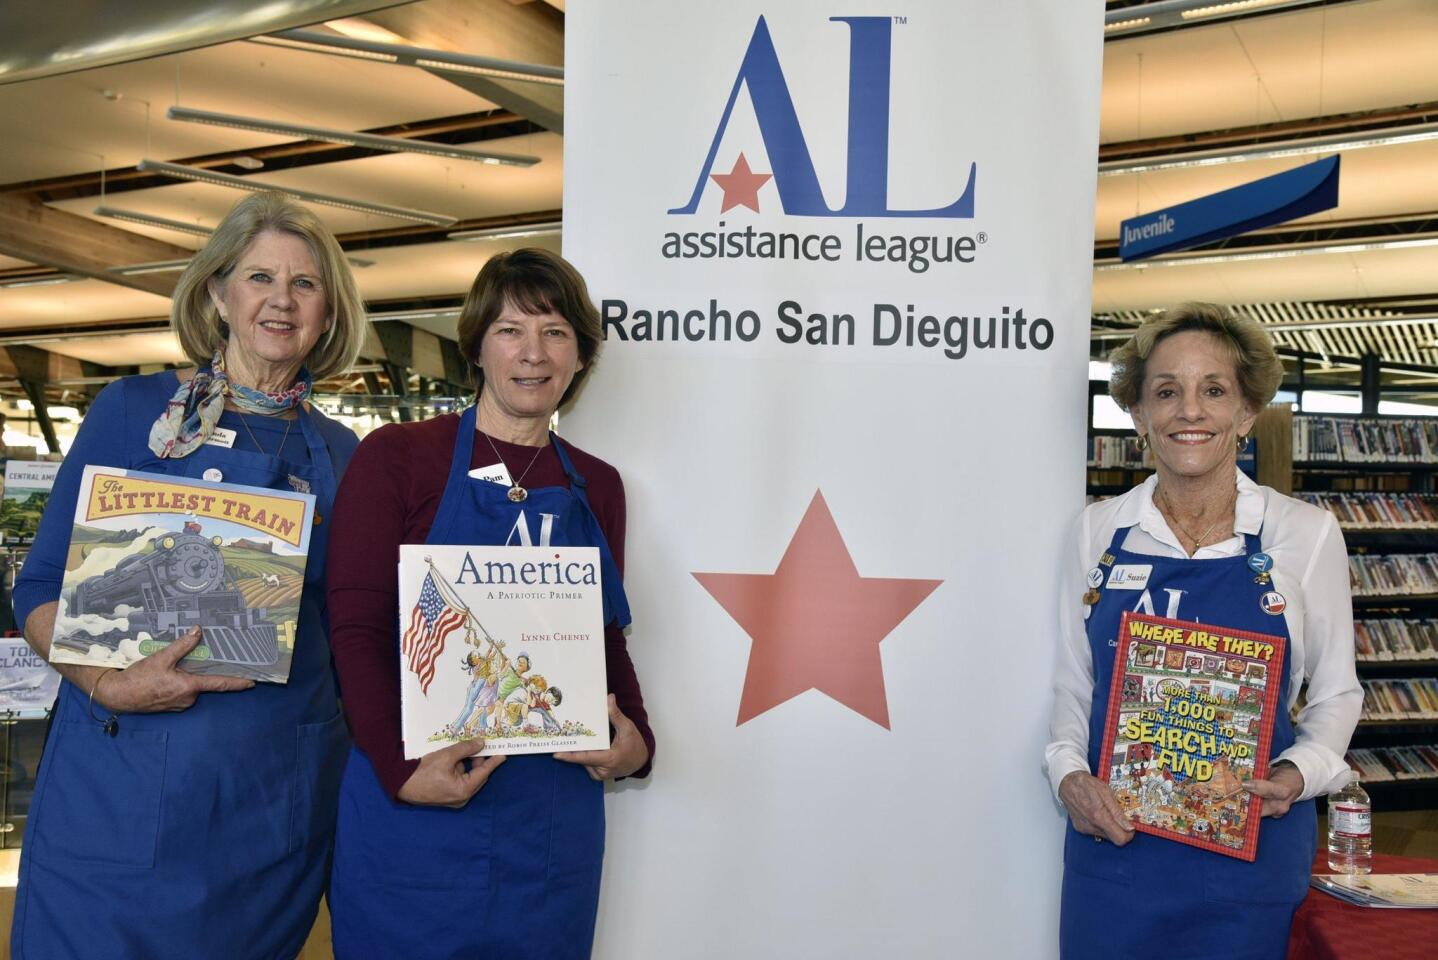 Linda Kermott, Pam Pacilio, and Suzie Perry of Assistance League of Rancho San Dieguito had a children's book give-away